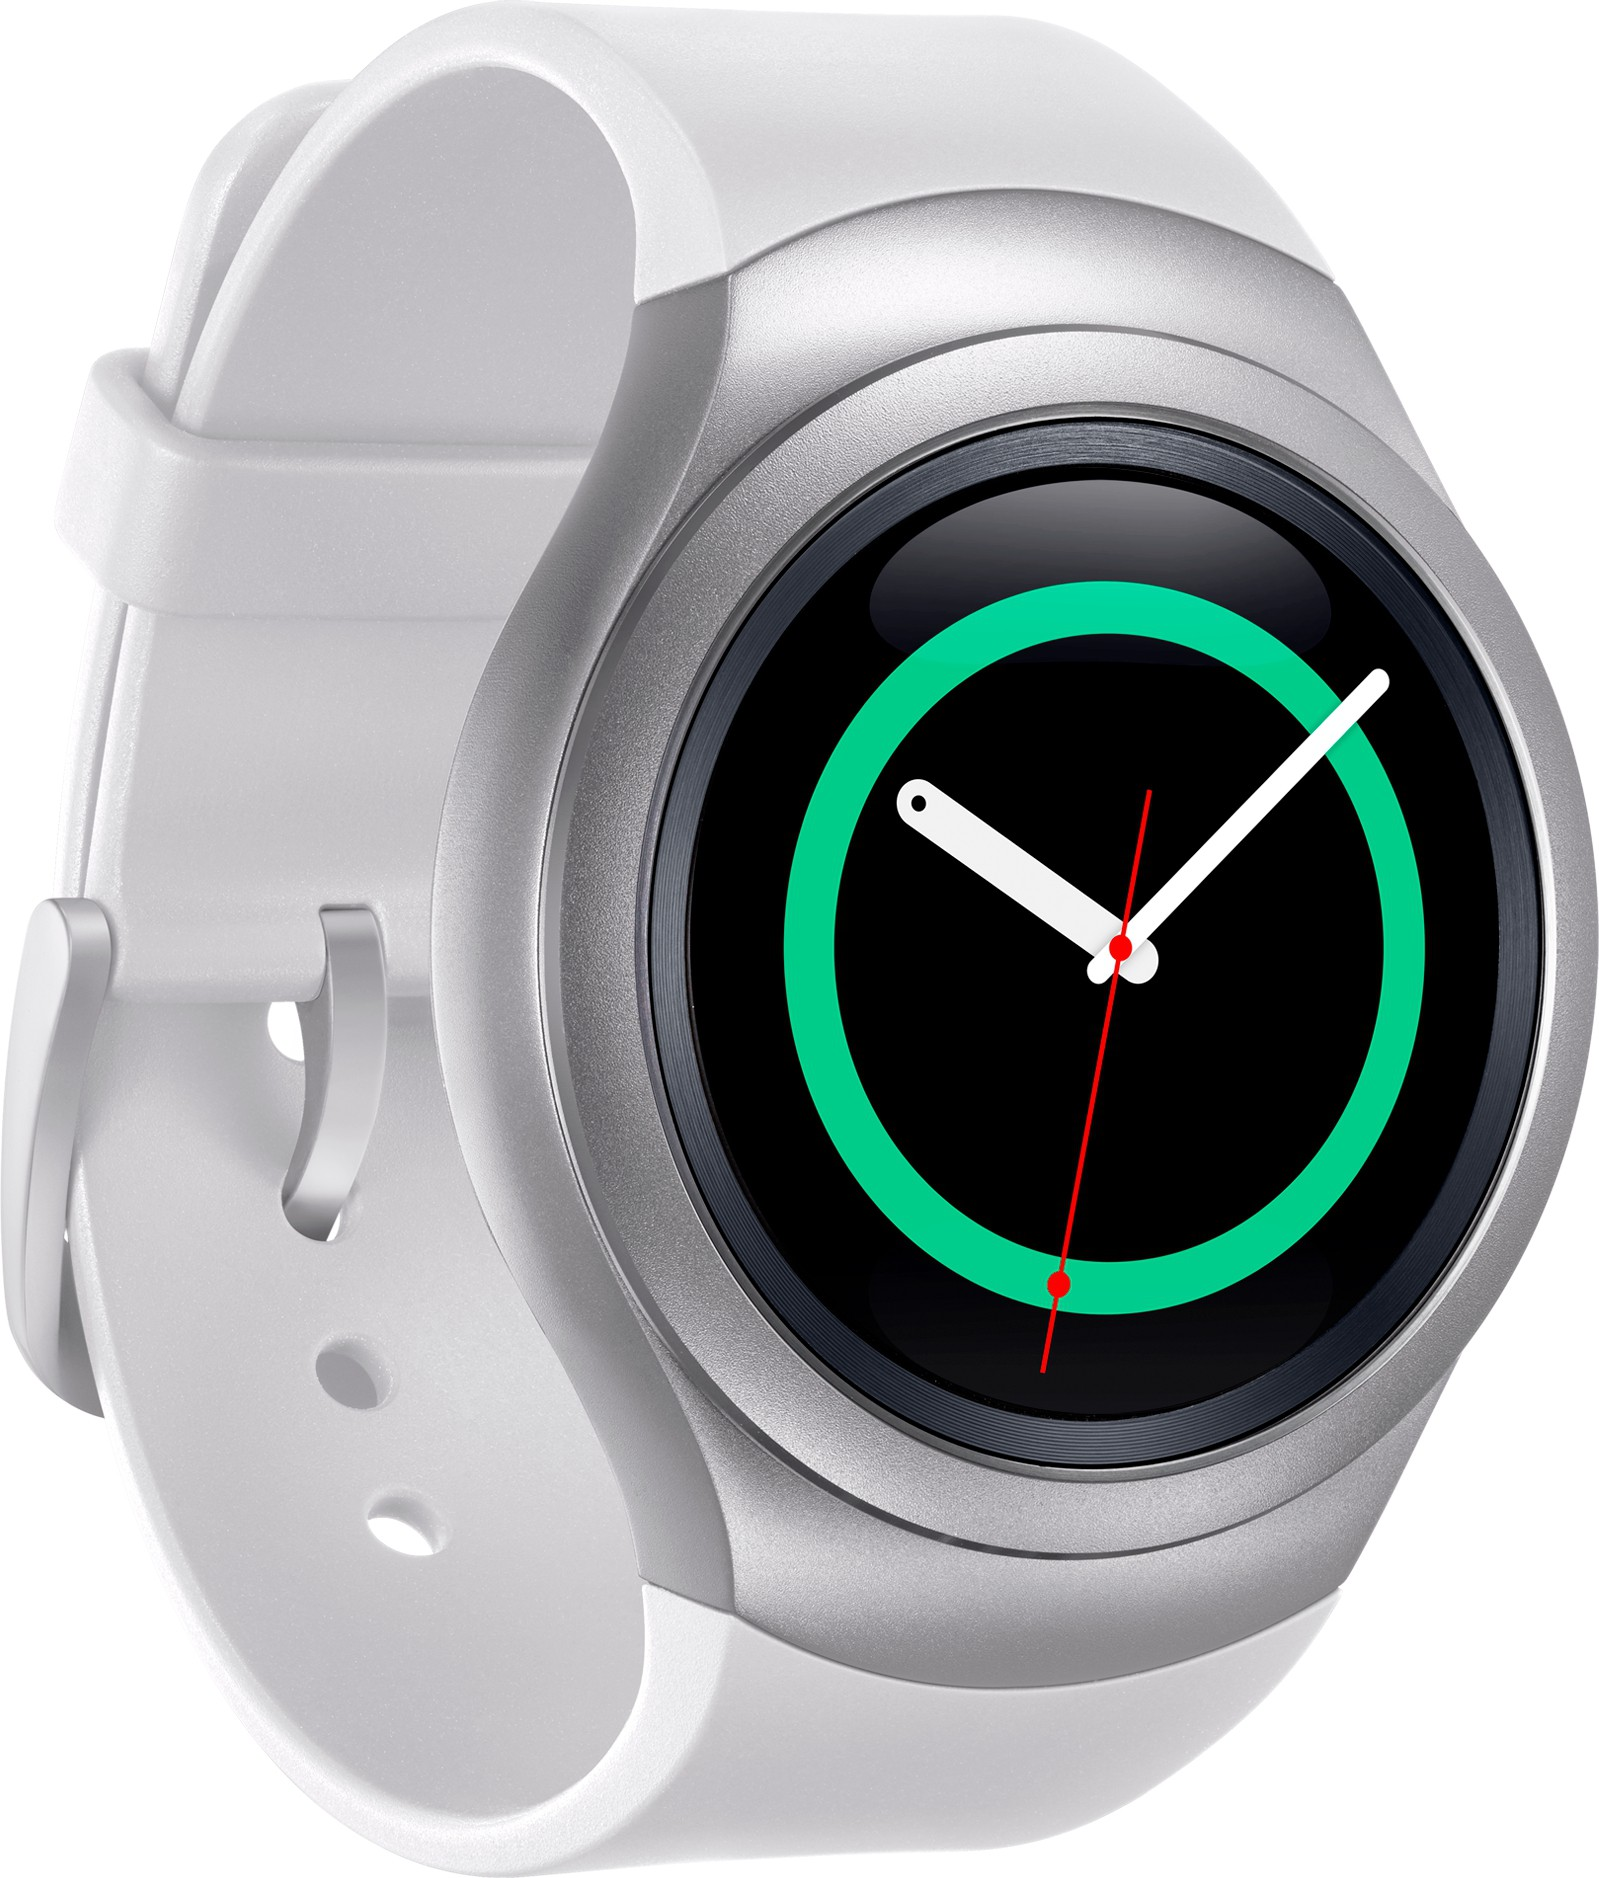 Deals | Samsung Gear S2 Minimum Rs.10,000 Off